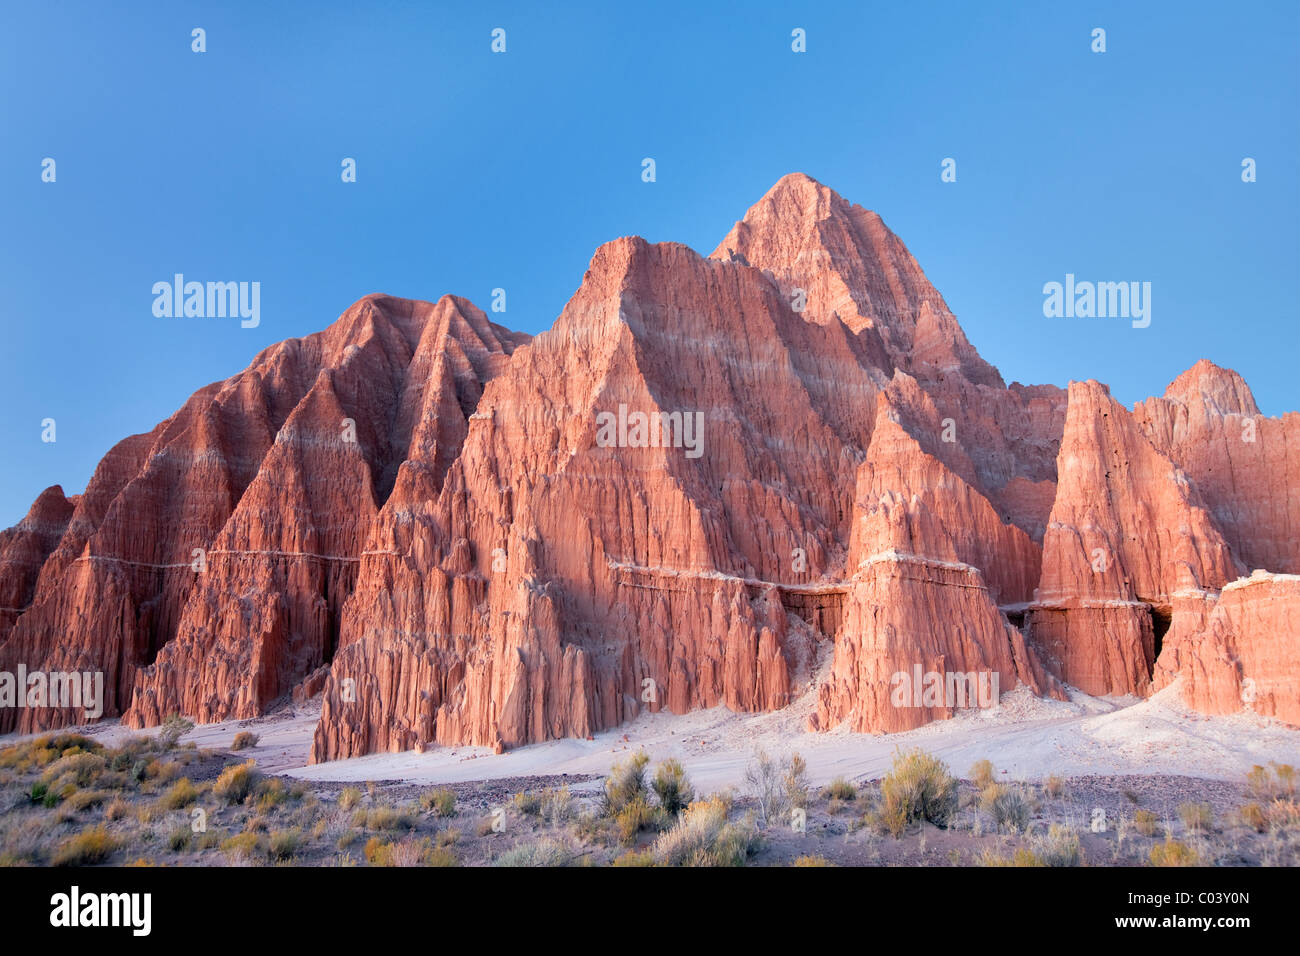 Eroded clay formations just before sunrise. Cathedral Gorge State Park, Nevada - Stock Image